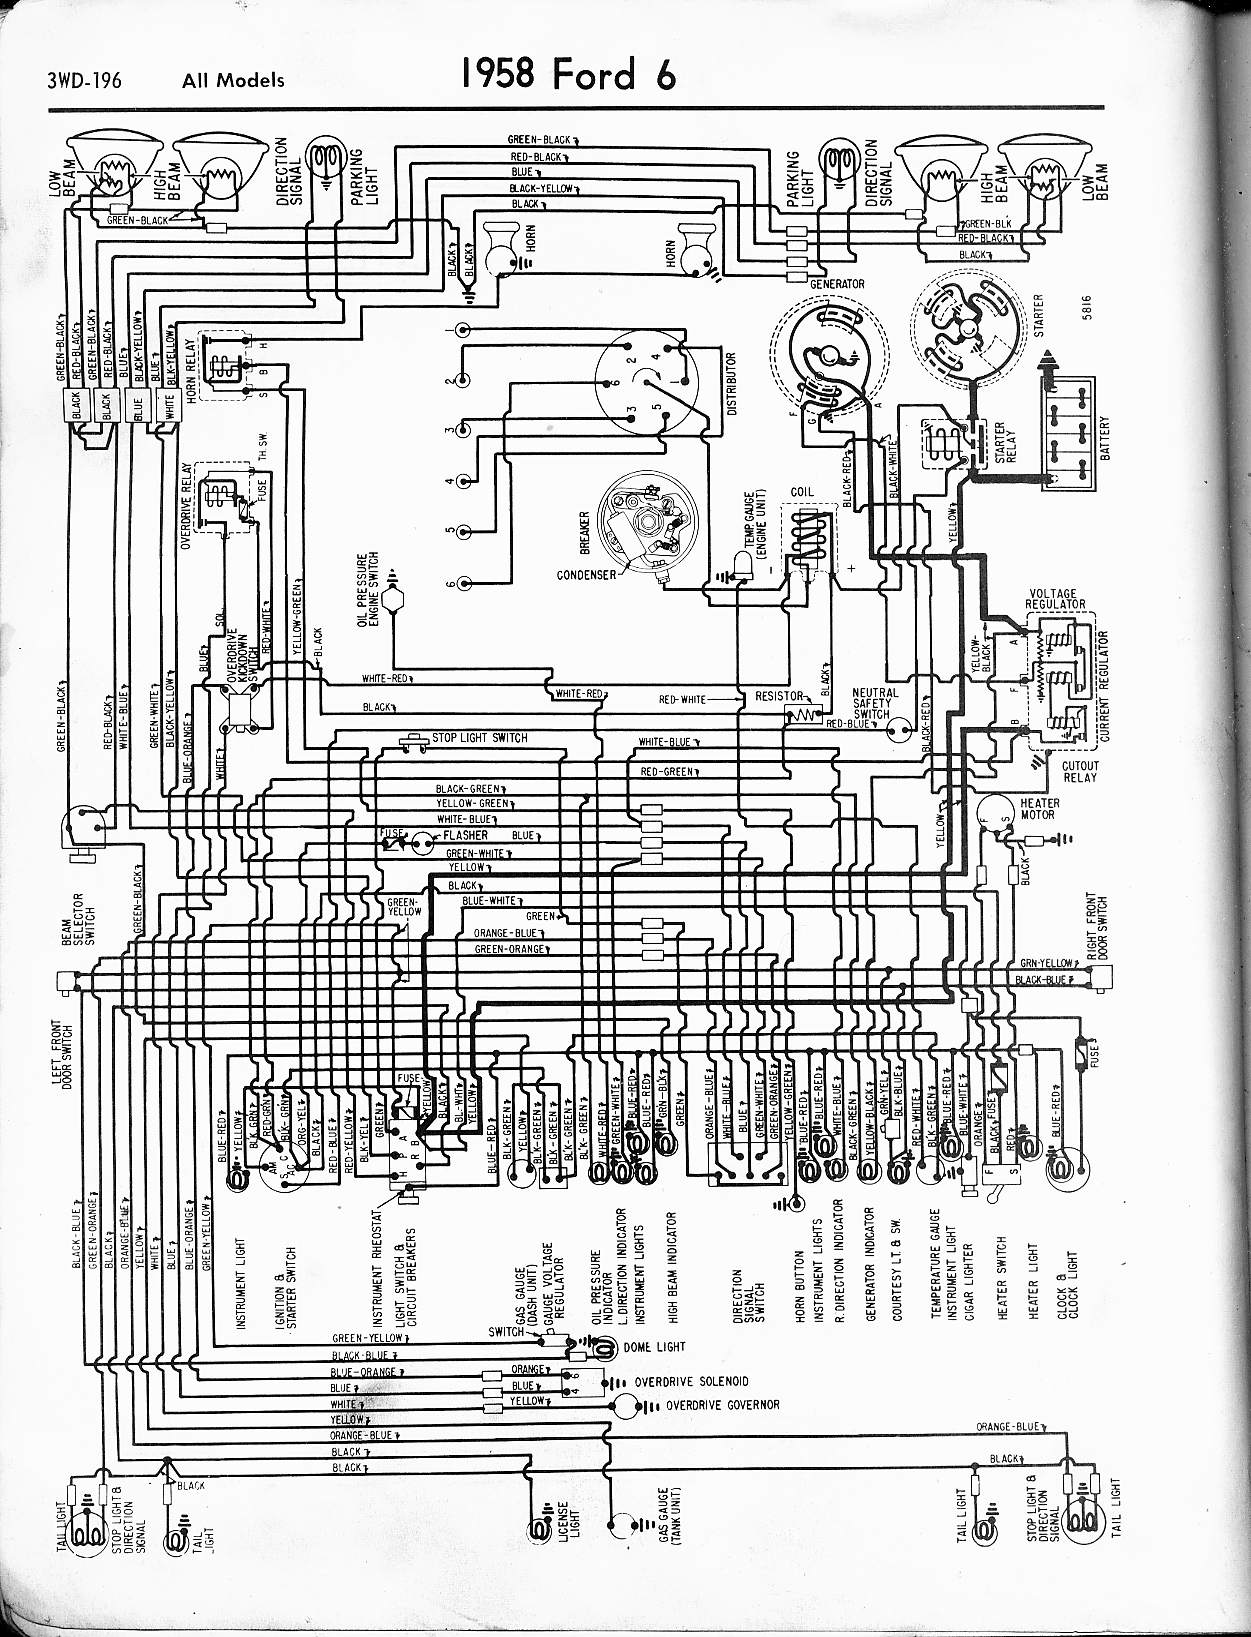 Surprising Ford 50 Wiring Harness Basic Electronics Wiring Diagram Wiring 101 Cranwise Assnl